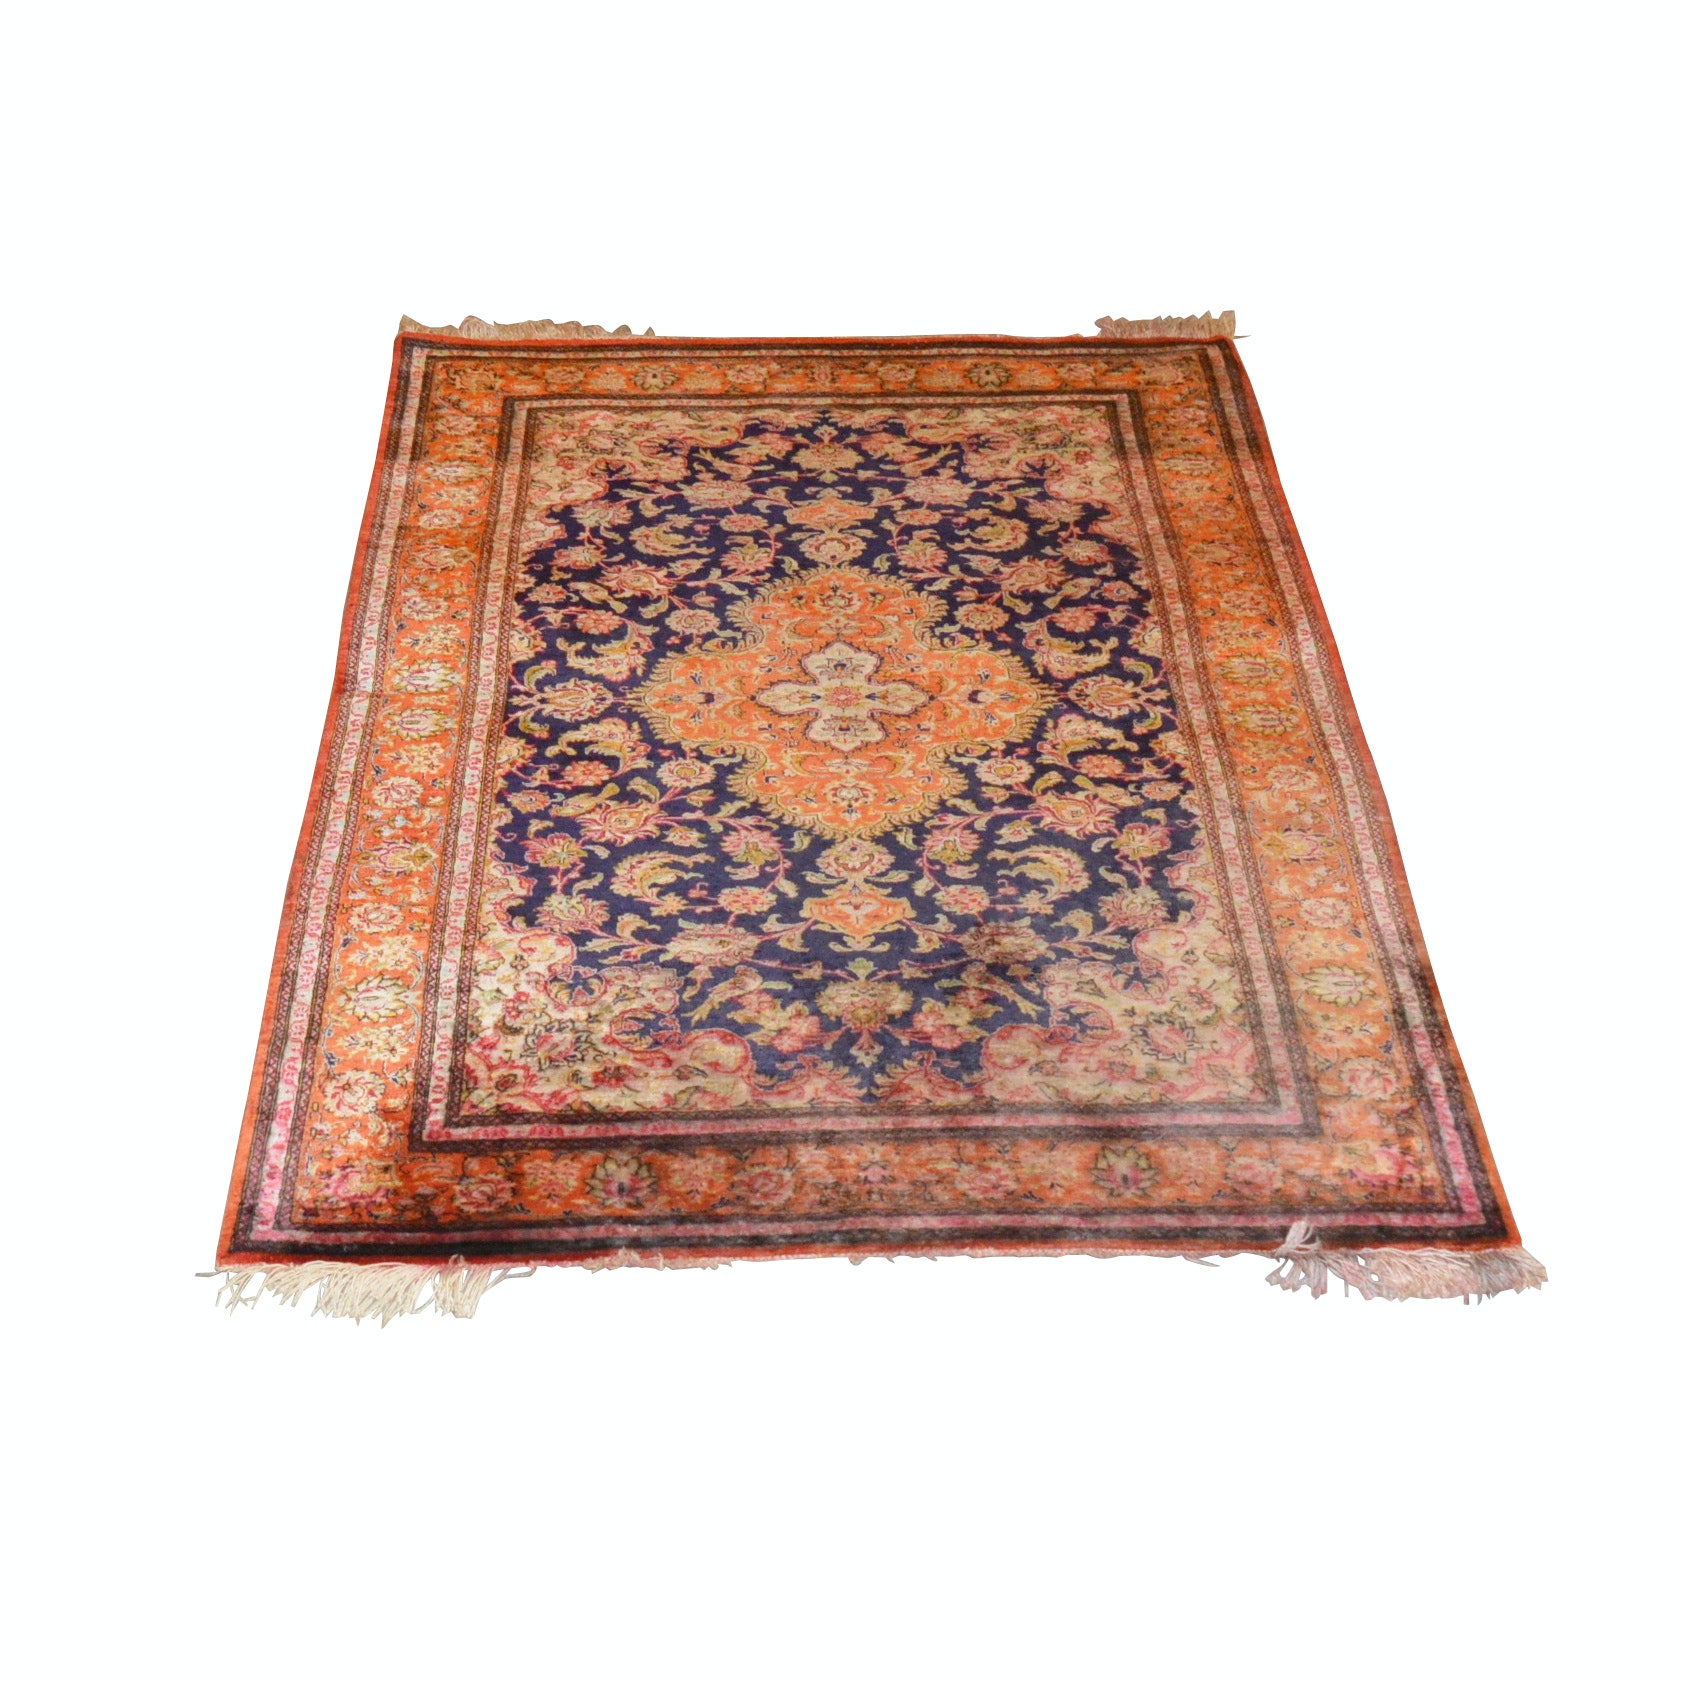 Hand-Knotted Silk and Wool Indo-Persian Rug